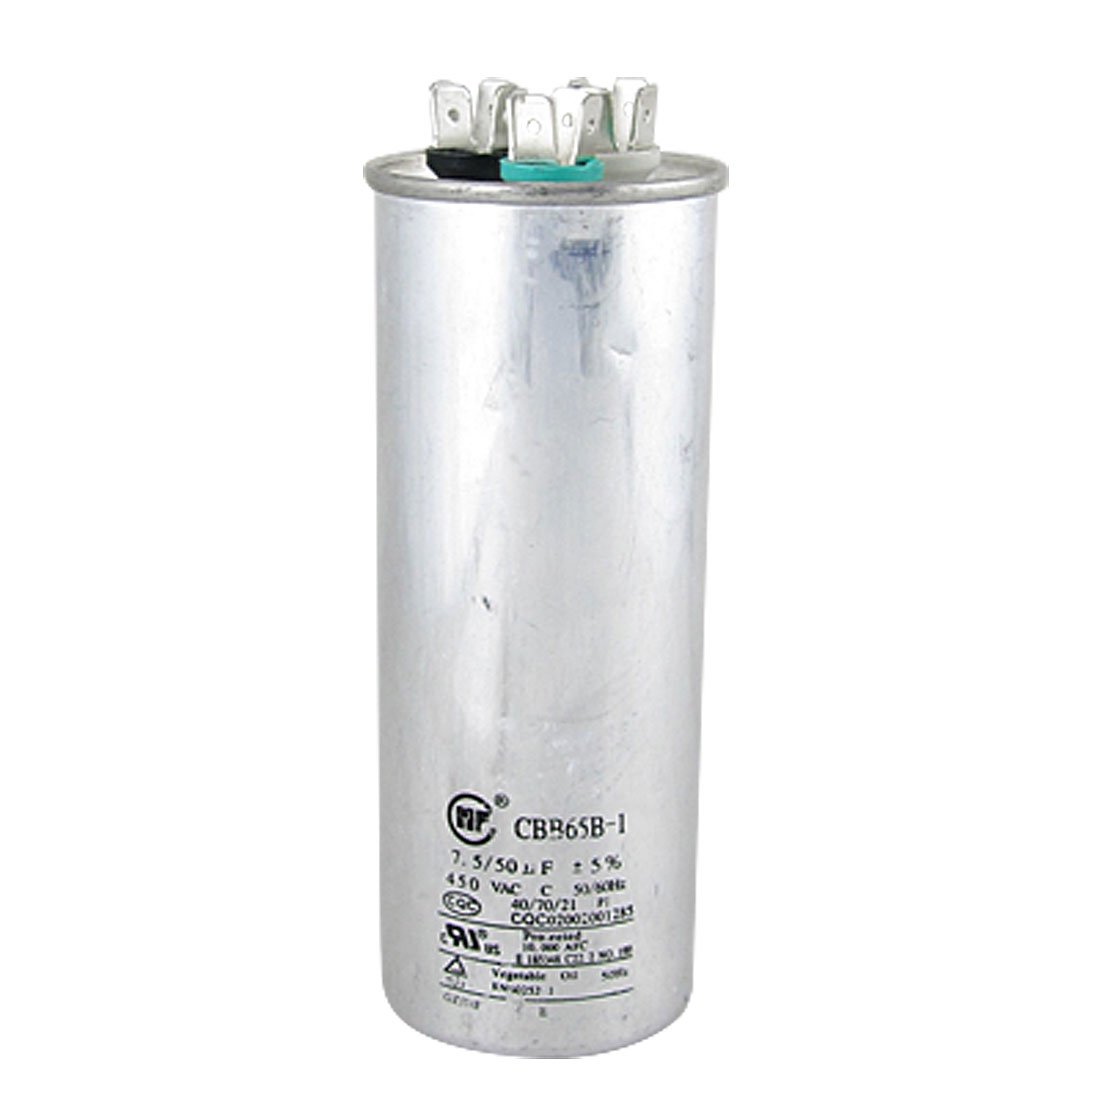 Air Conditioner CBB65B-1 AC 450V 50/60Hz 7.5/50uF Motor Run Capacitor